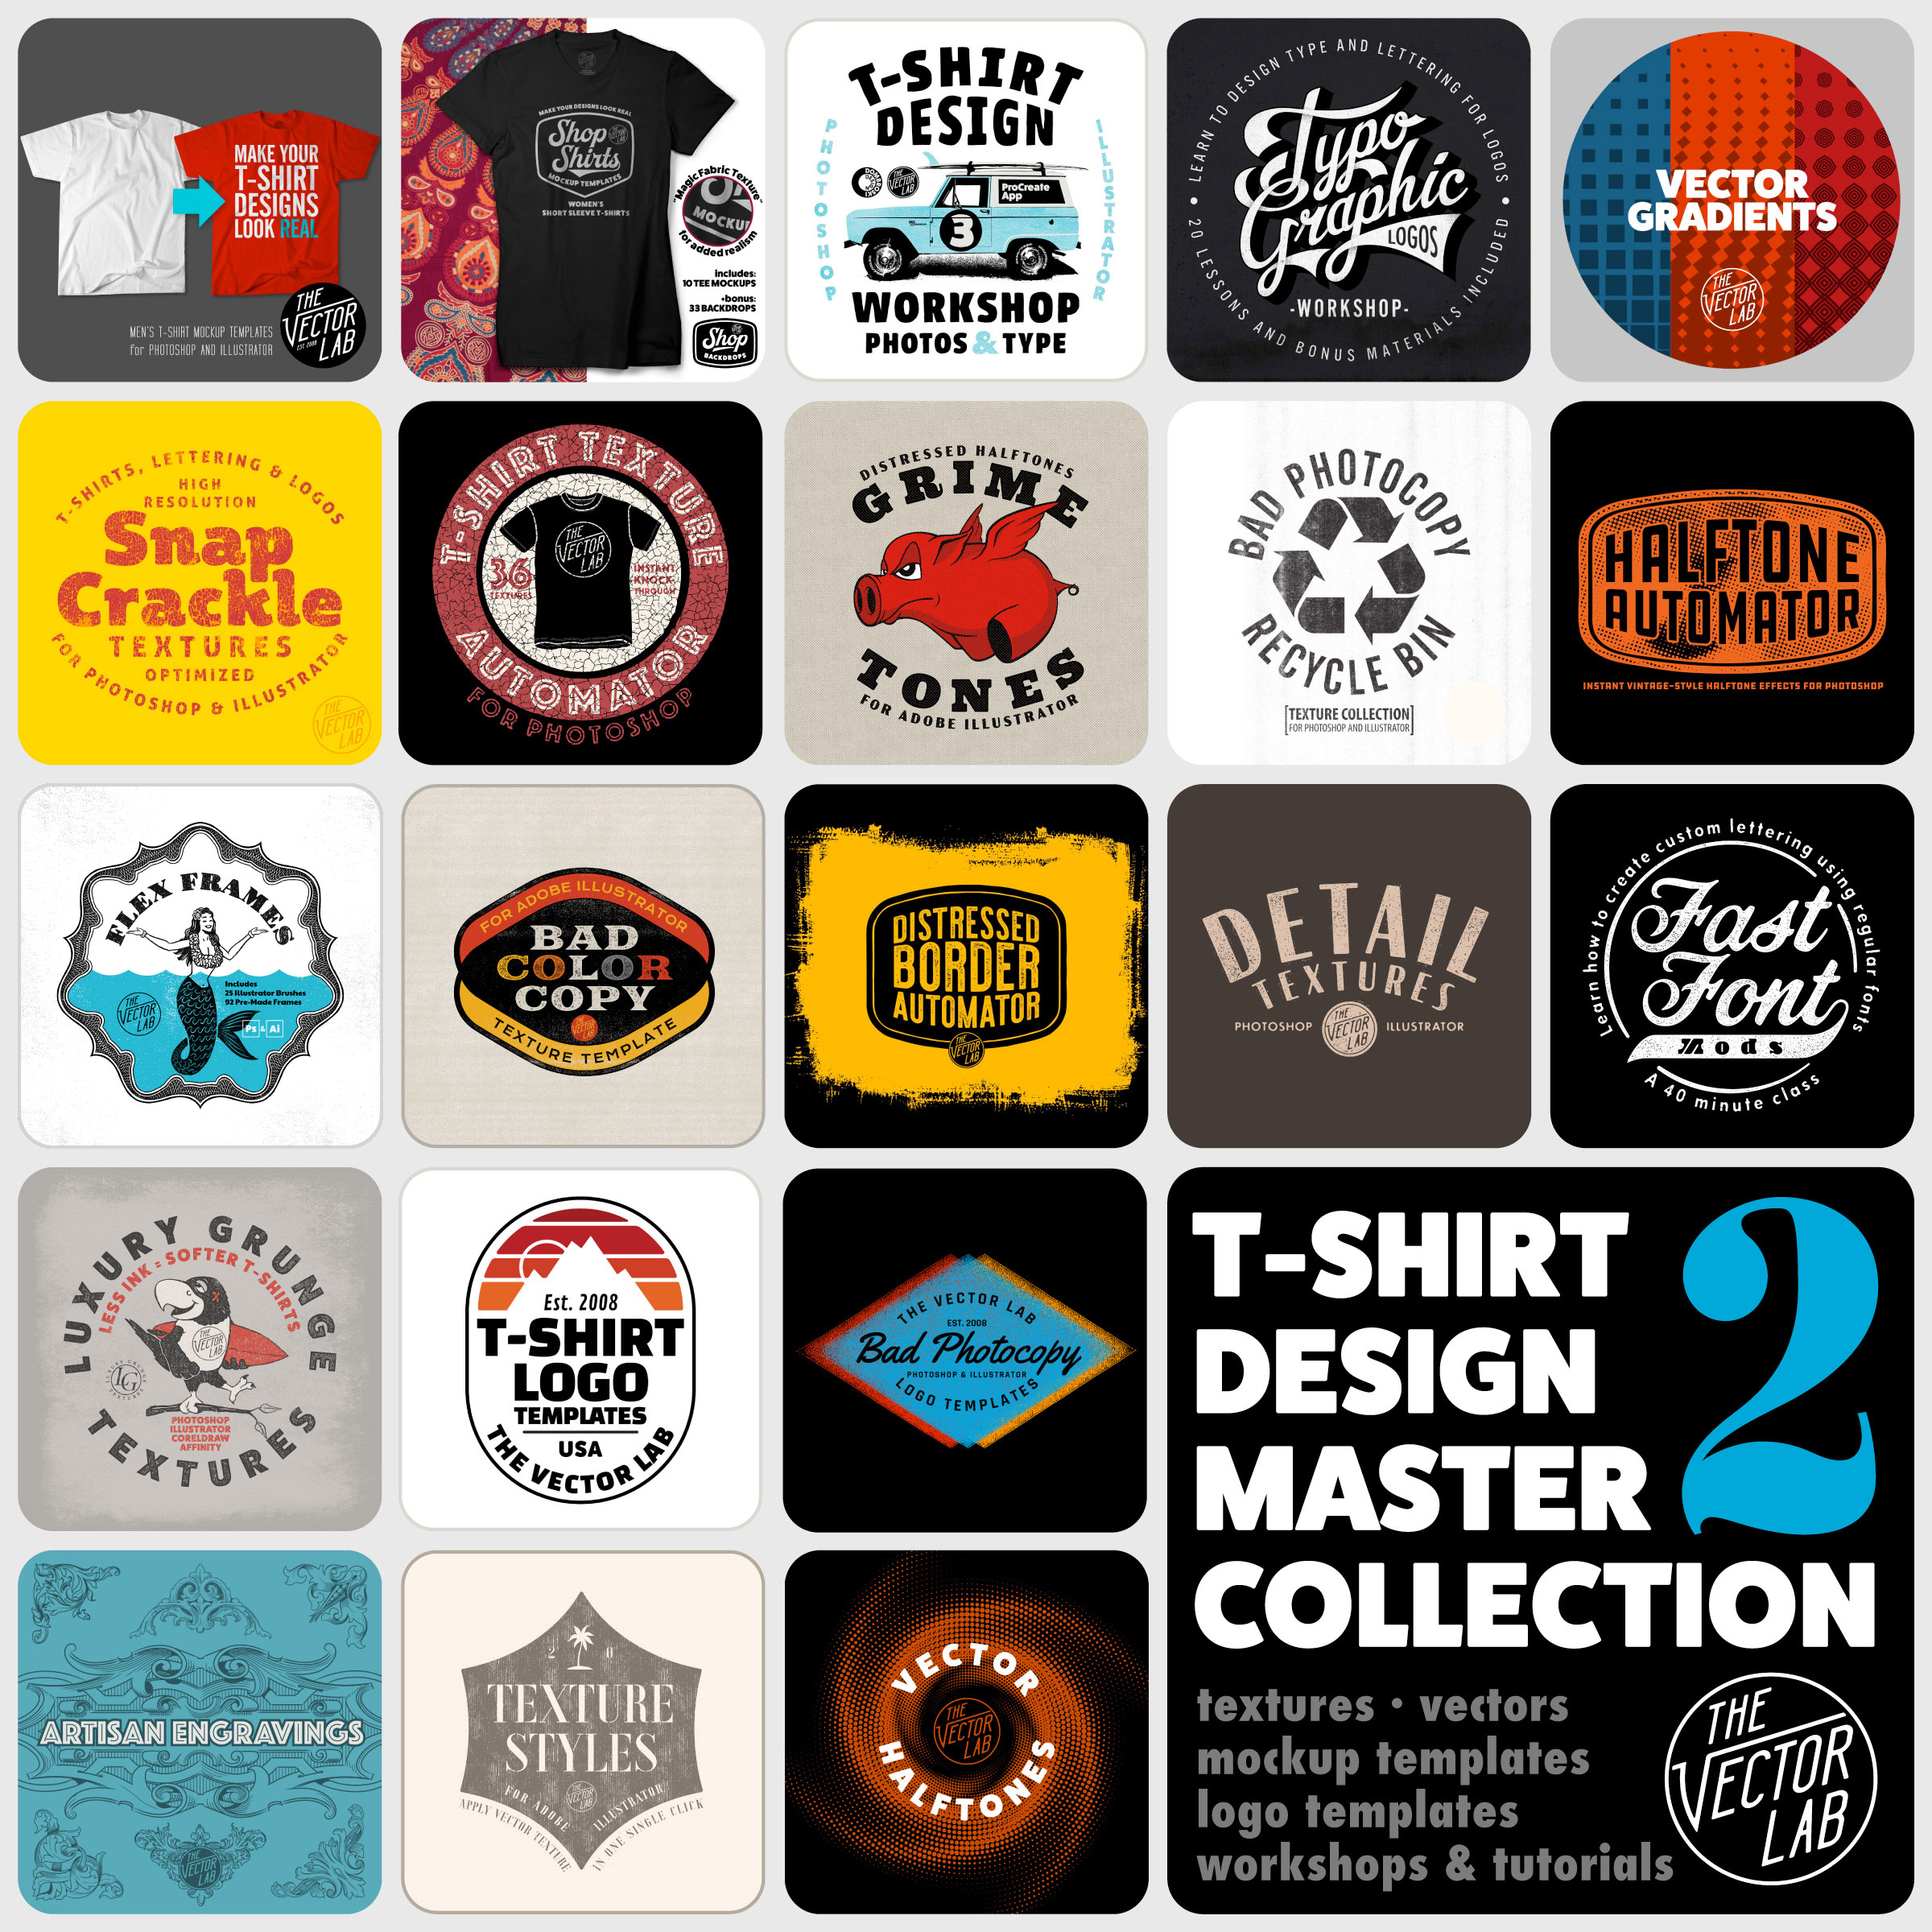 T-SHIRT-DESIGN-MASTER-COLLECTION-DECEMBER.jpg